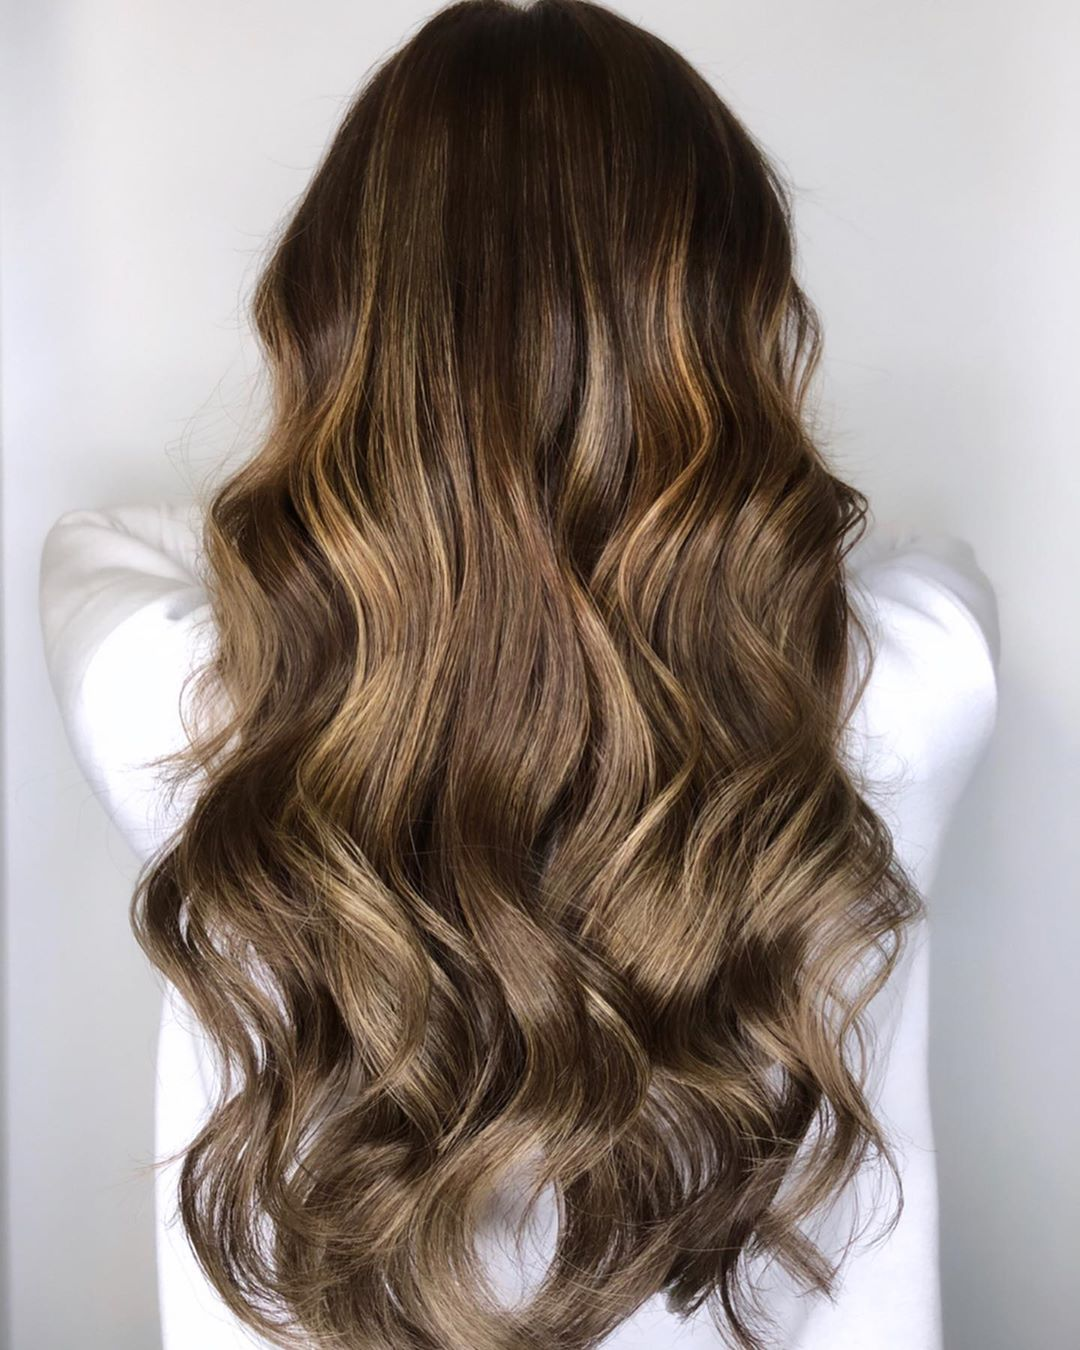 Light Golden Brown Hair Color: What It Looks Like & 15 Trendy Ideas